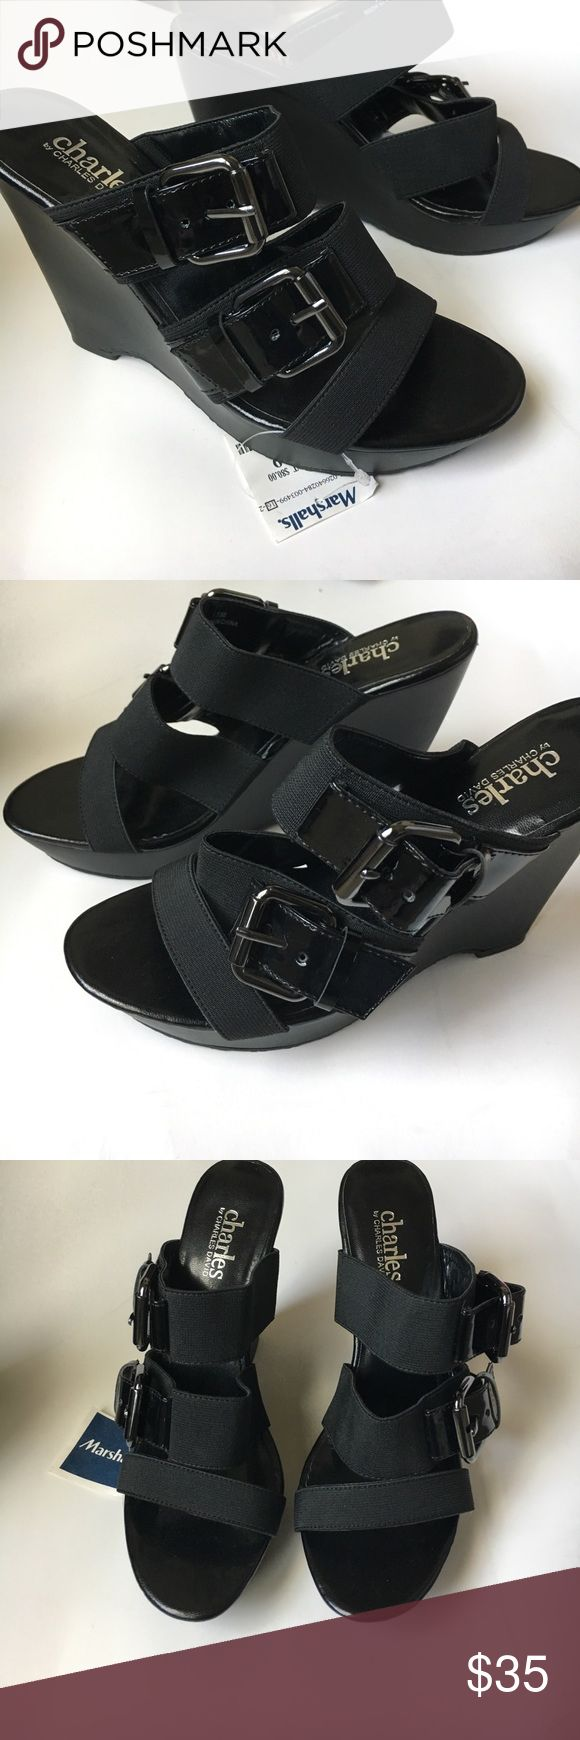 NWT Charles by Charles David wedges NWT Charles by Charles David wedges. Black strappy wedges    Buckles stretchy. Some scratches on heels. Shown in pic. Charles David Shoes Wedges